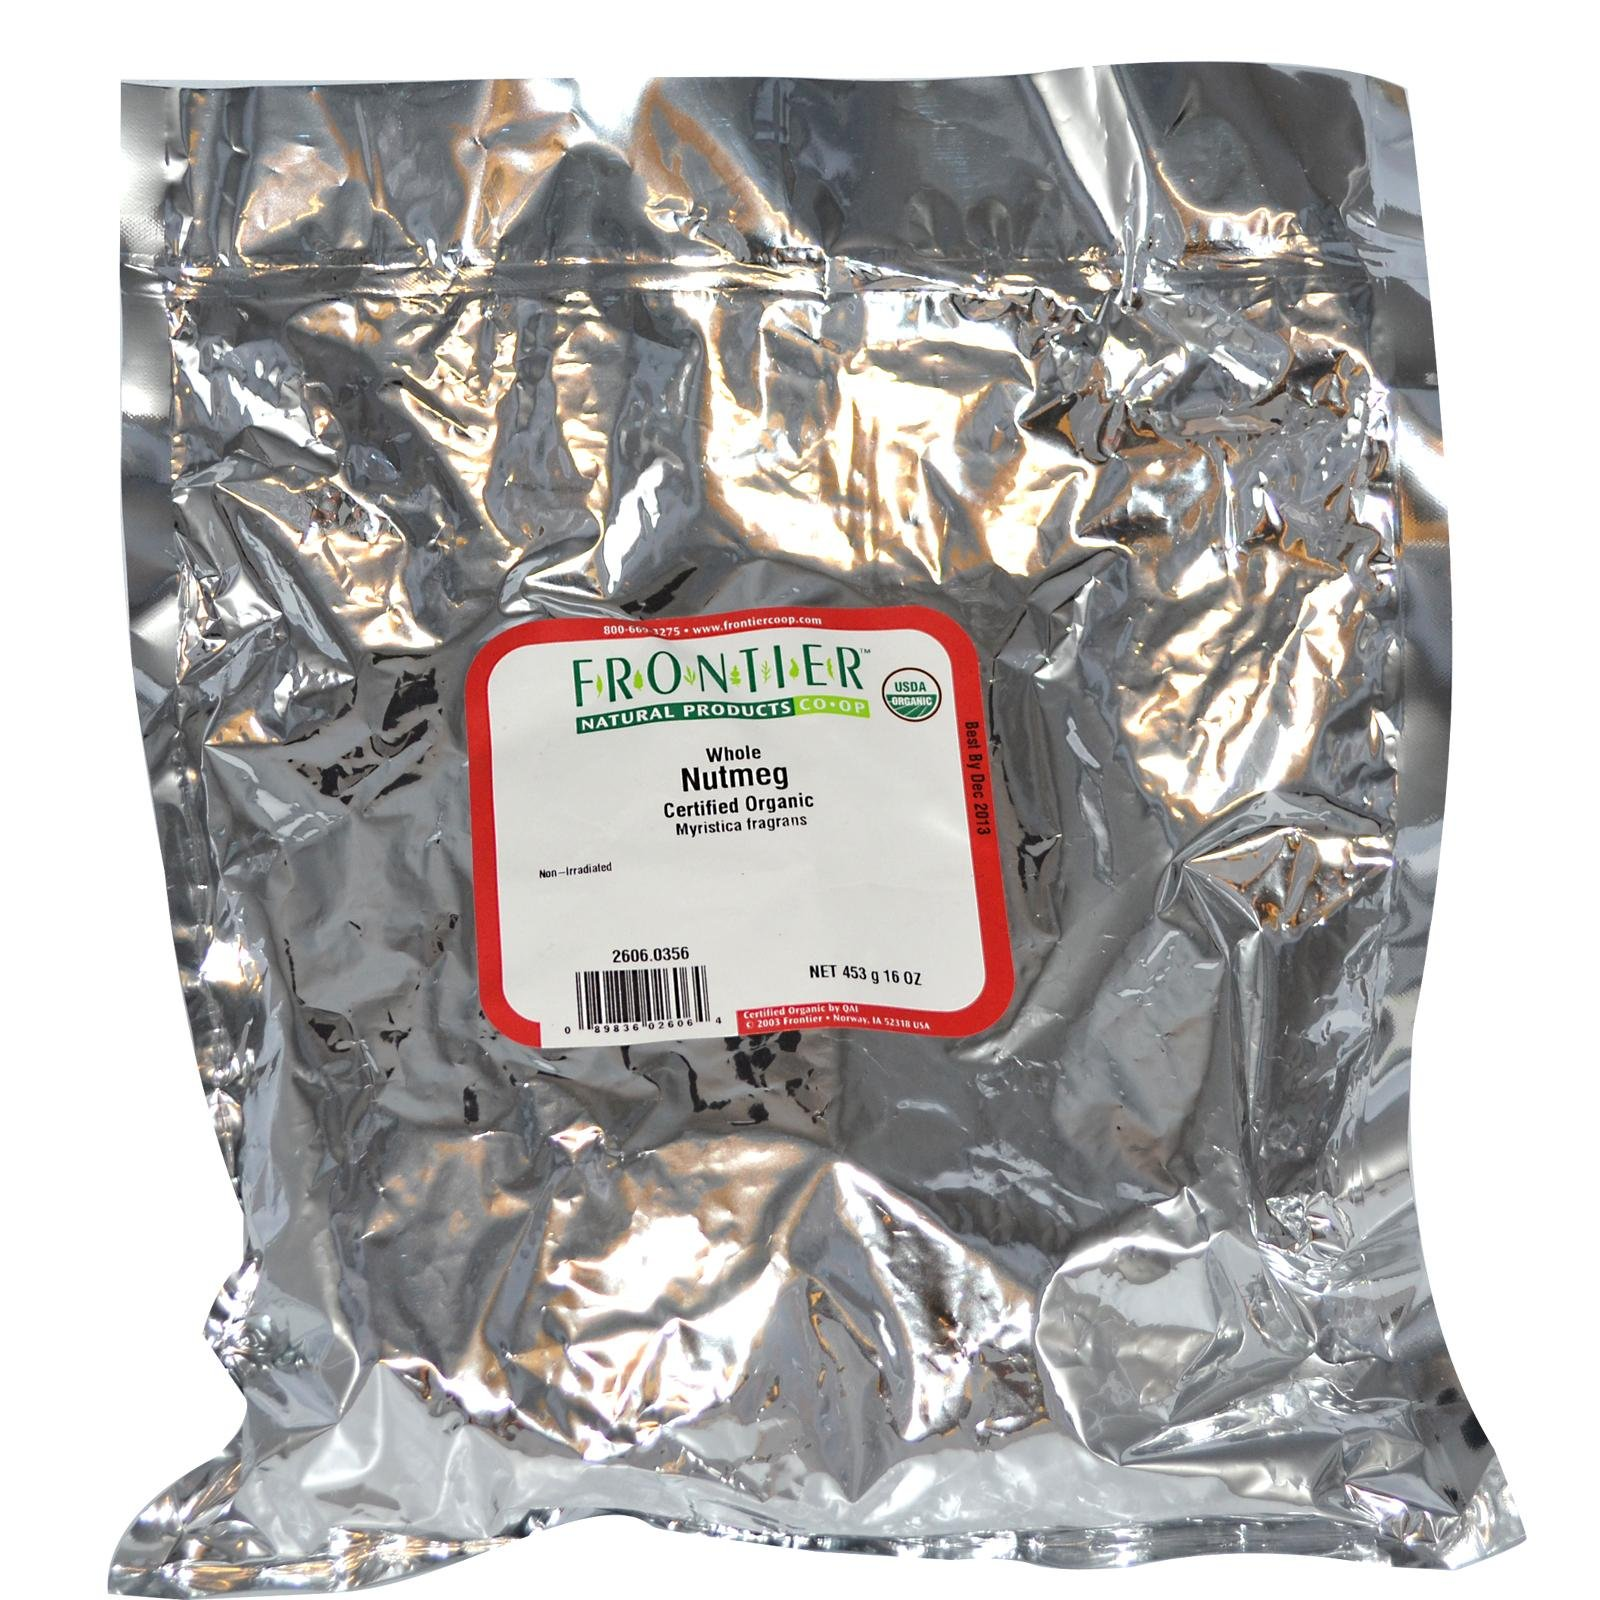 One 1lb Nutmeg whole Organic (Frontier)